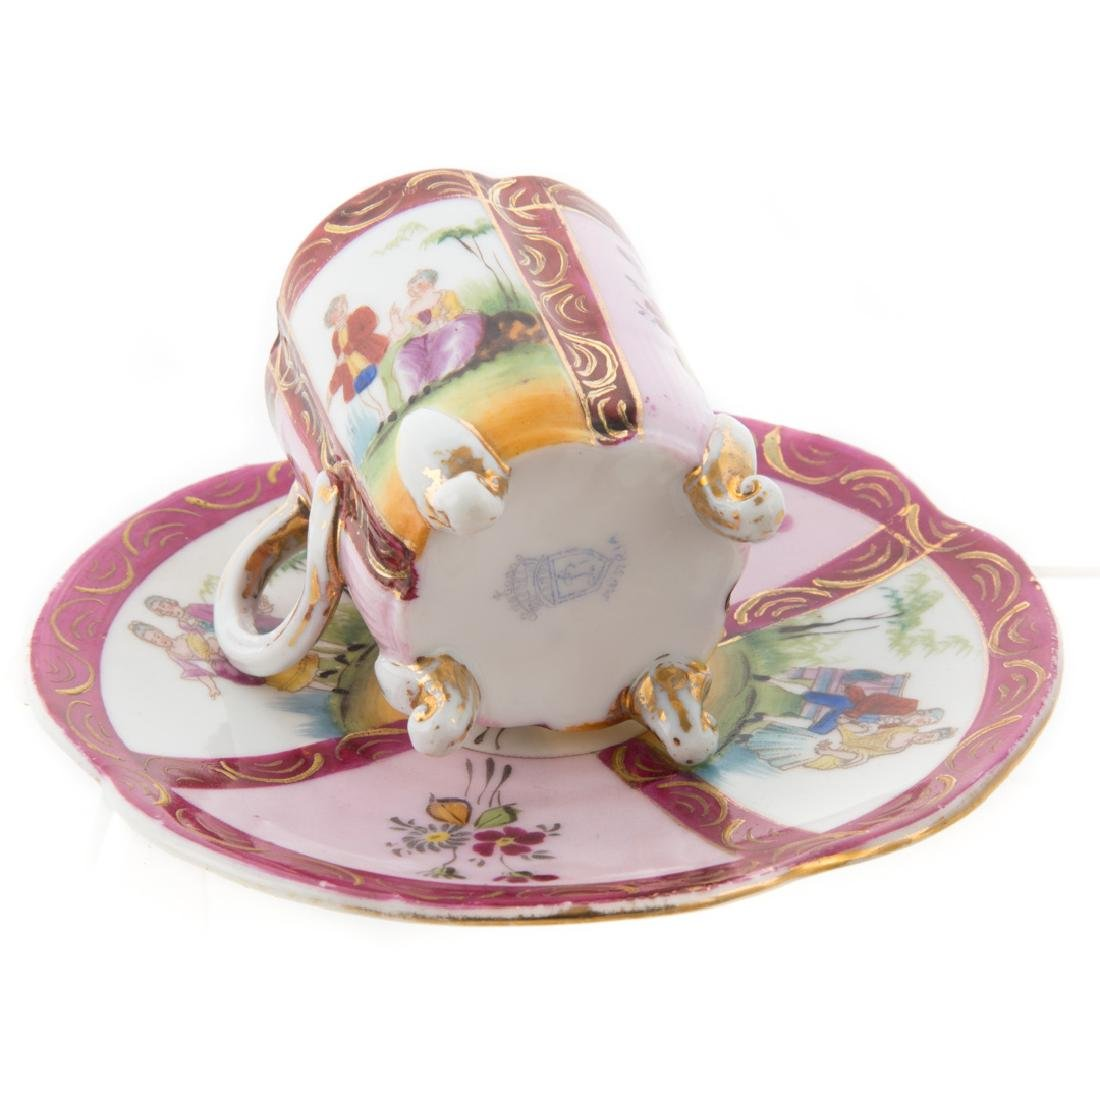 Dresden porcelain partial tea service - 4